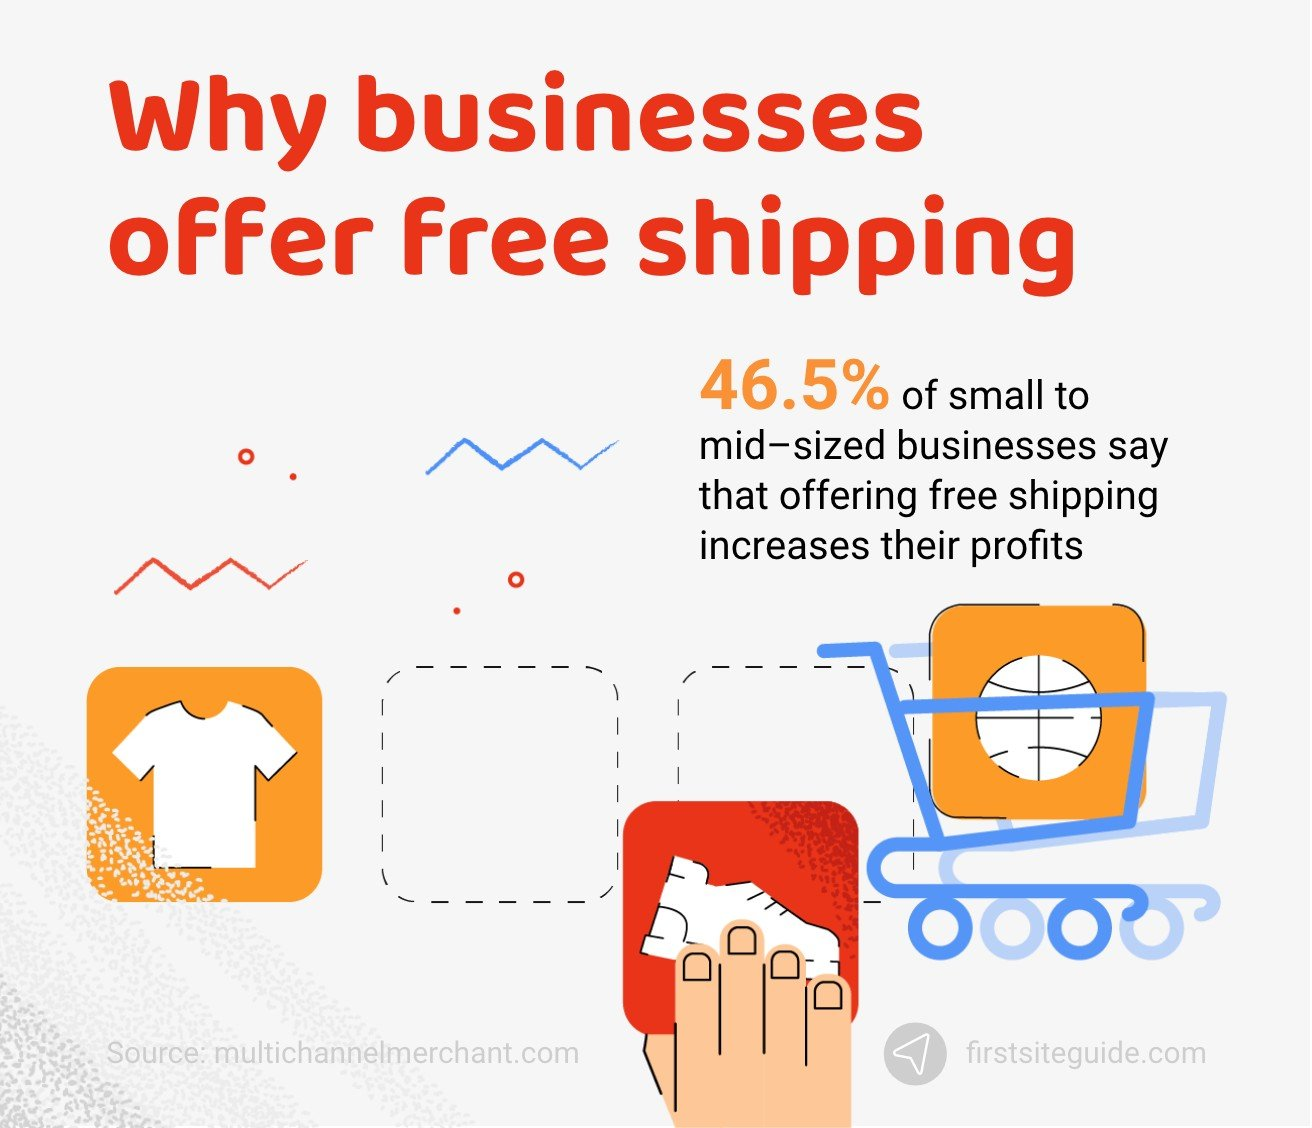 Why businesses offer free shipping